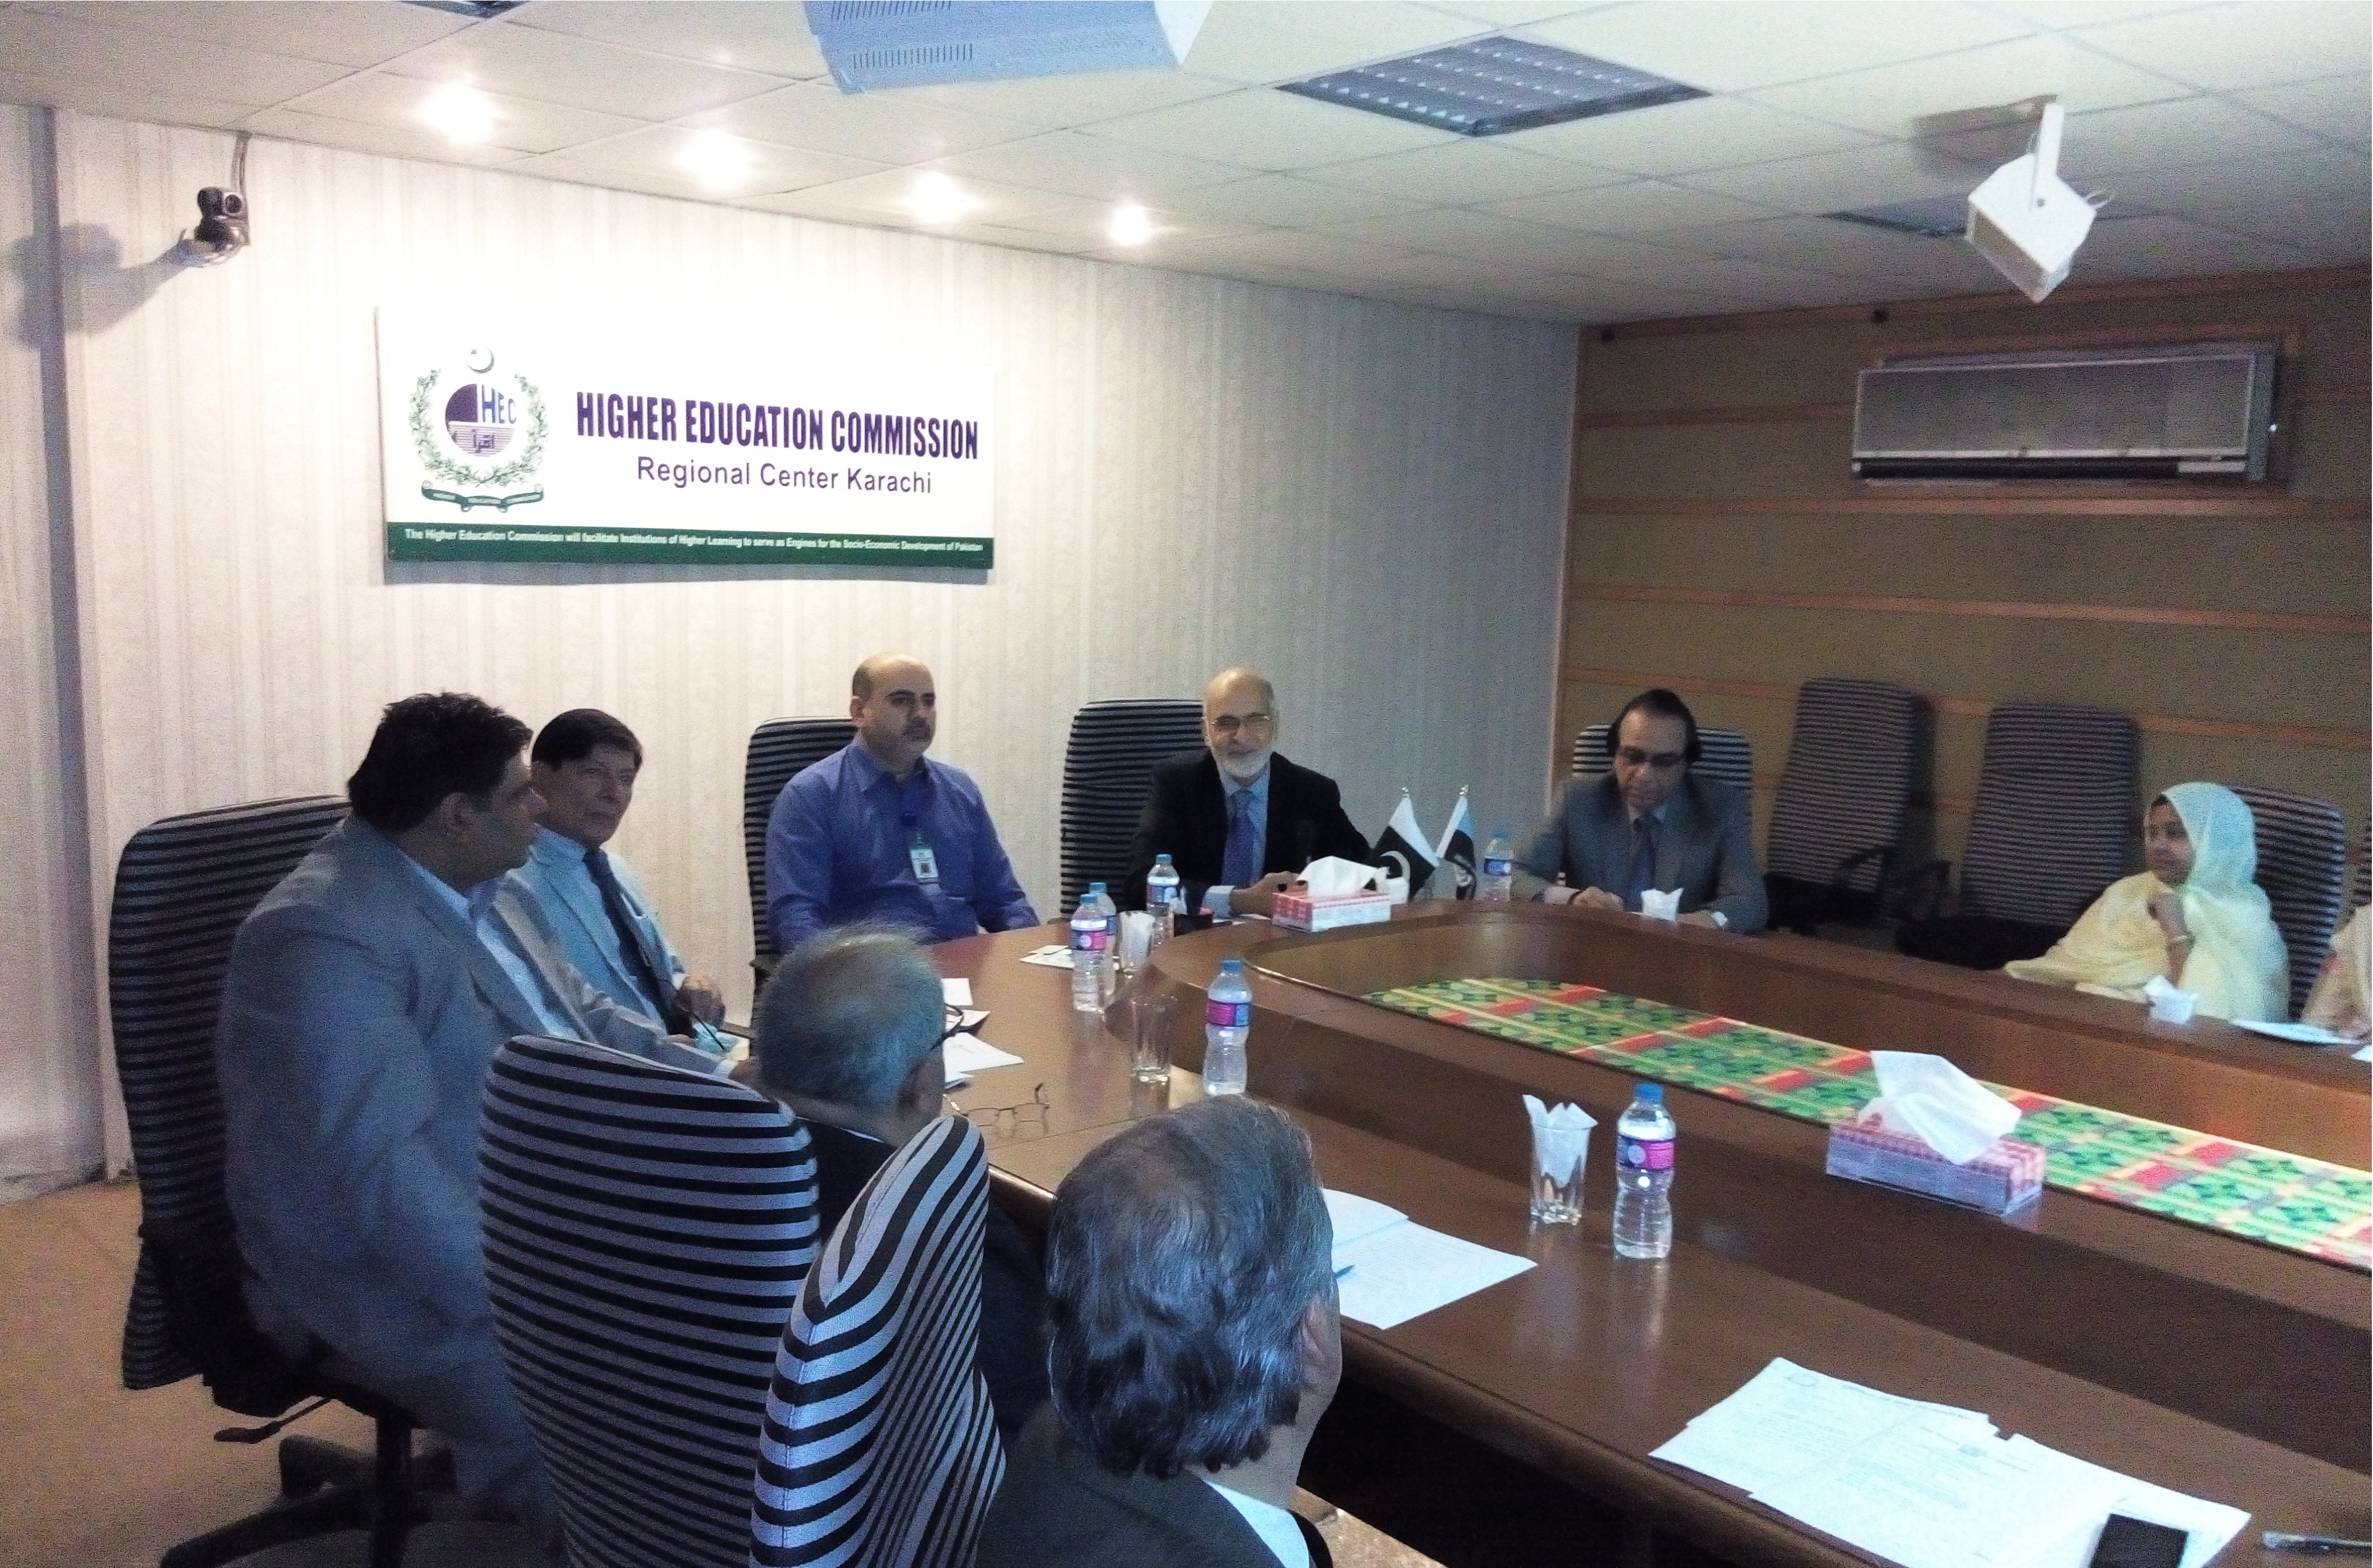 Seminar at HEC Regional Office Karachi